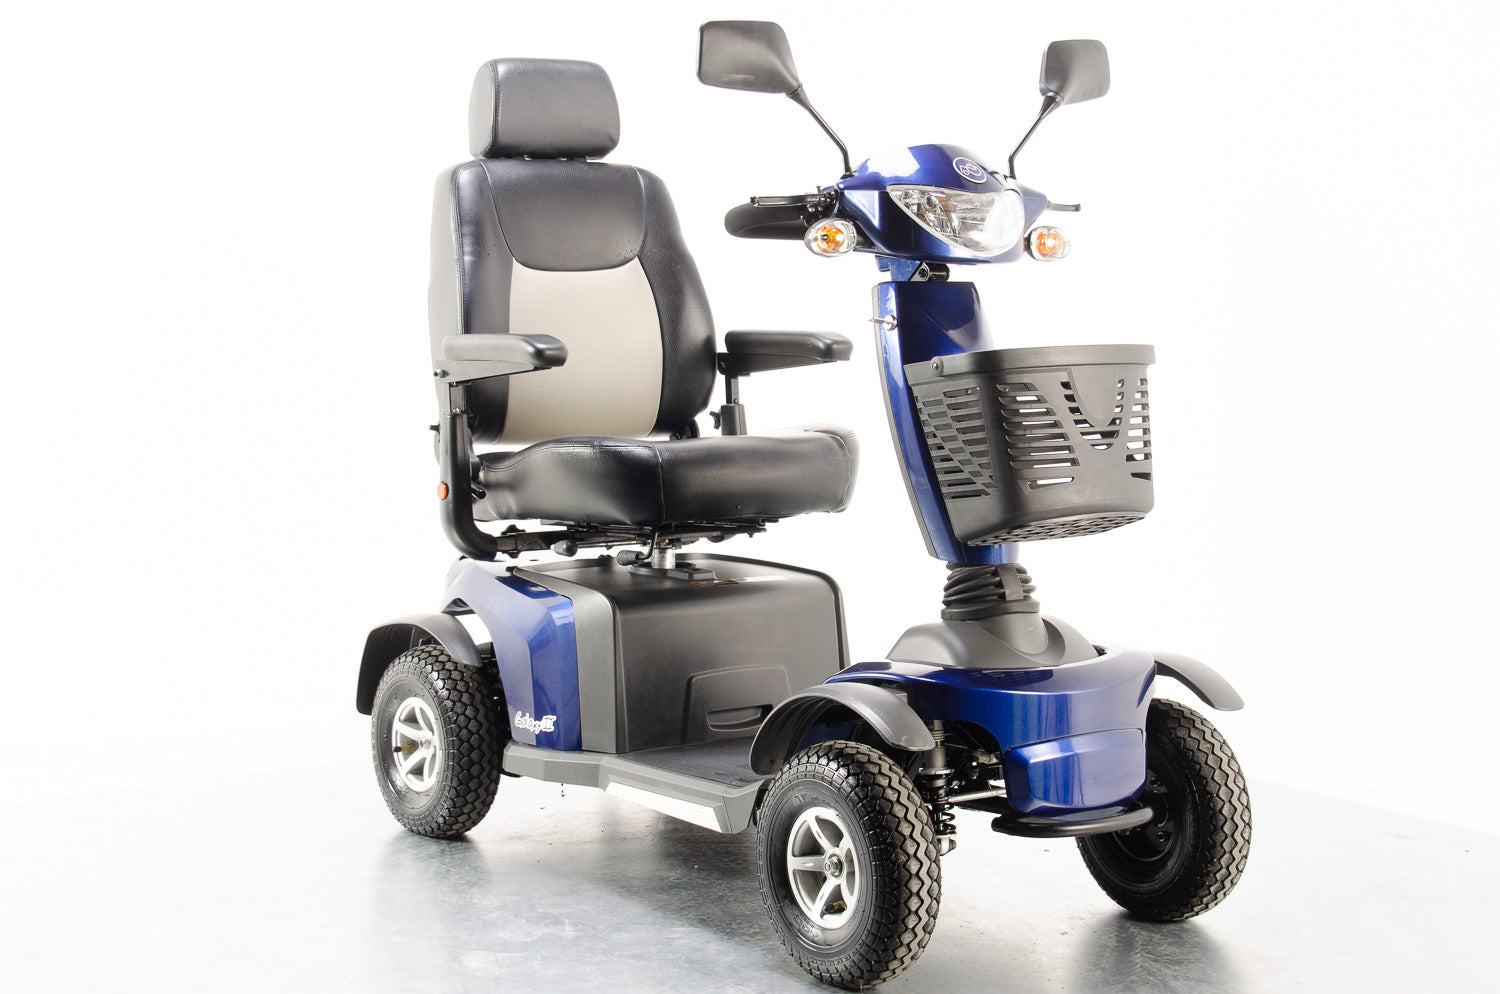 2015 Van Os Galaxy II 2 8mph Large Comfort Class 3 Mobility Scooter in Blue